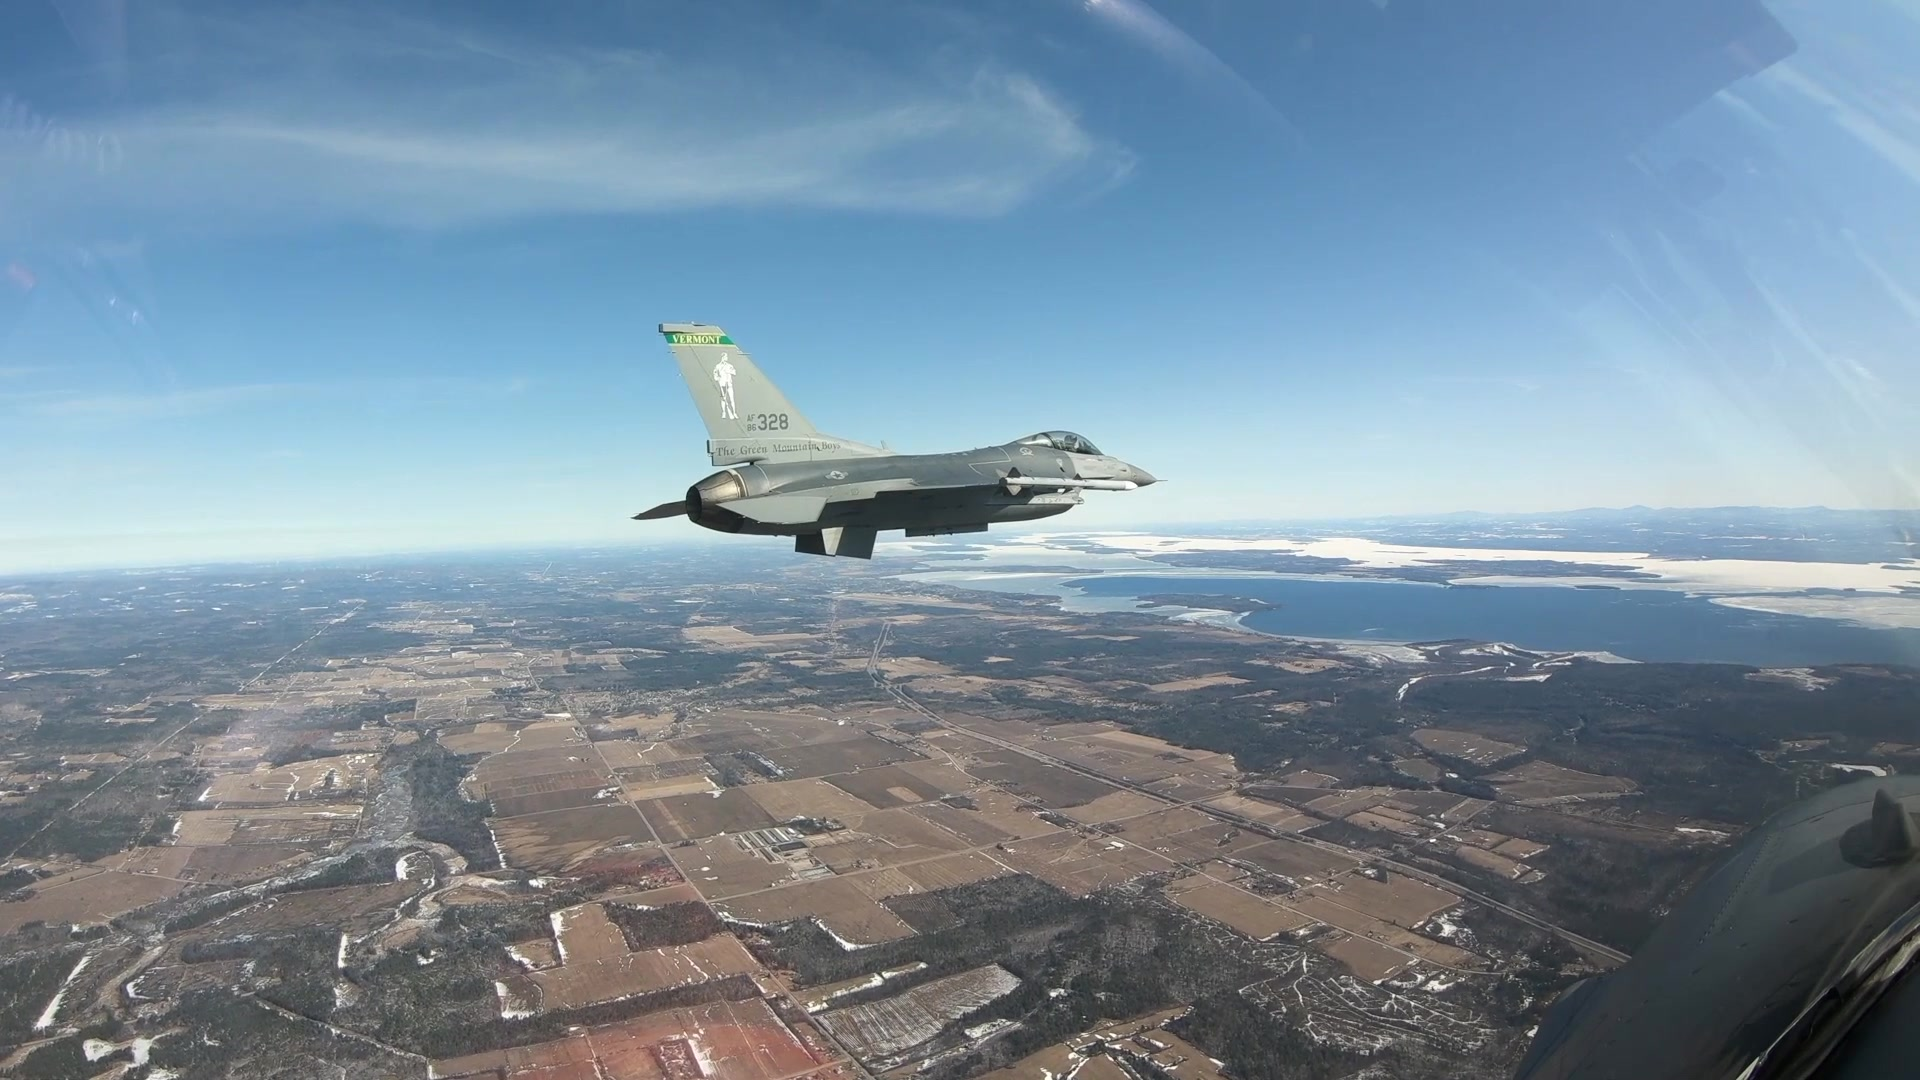 158th Fighter Wing Aerial F-16 footage from inside the cockpit.